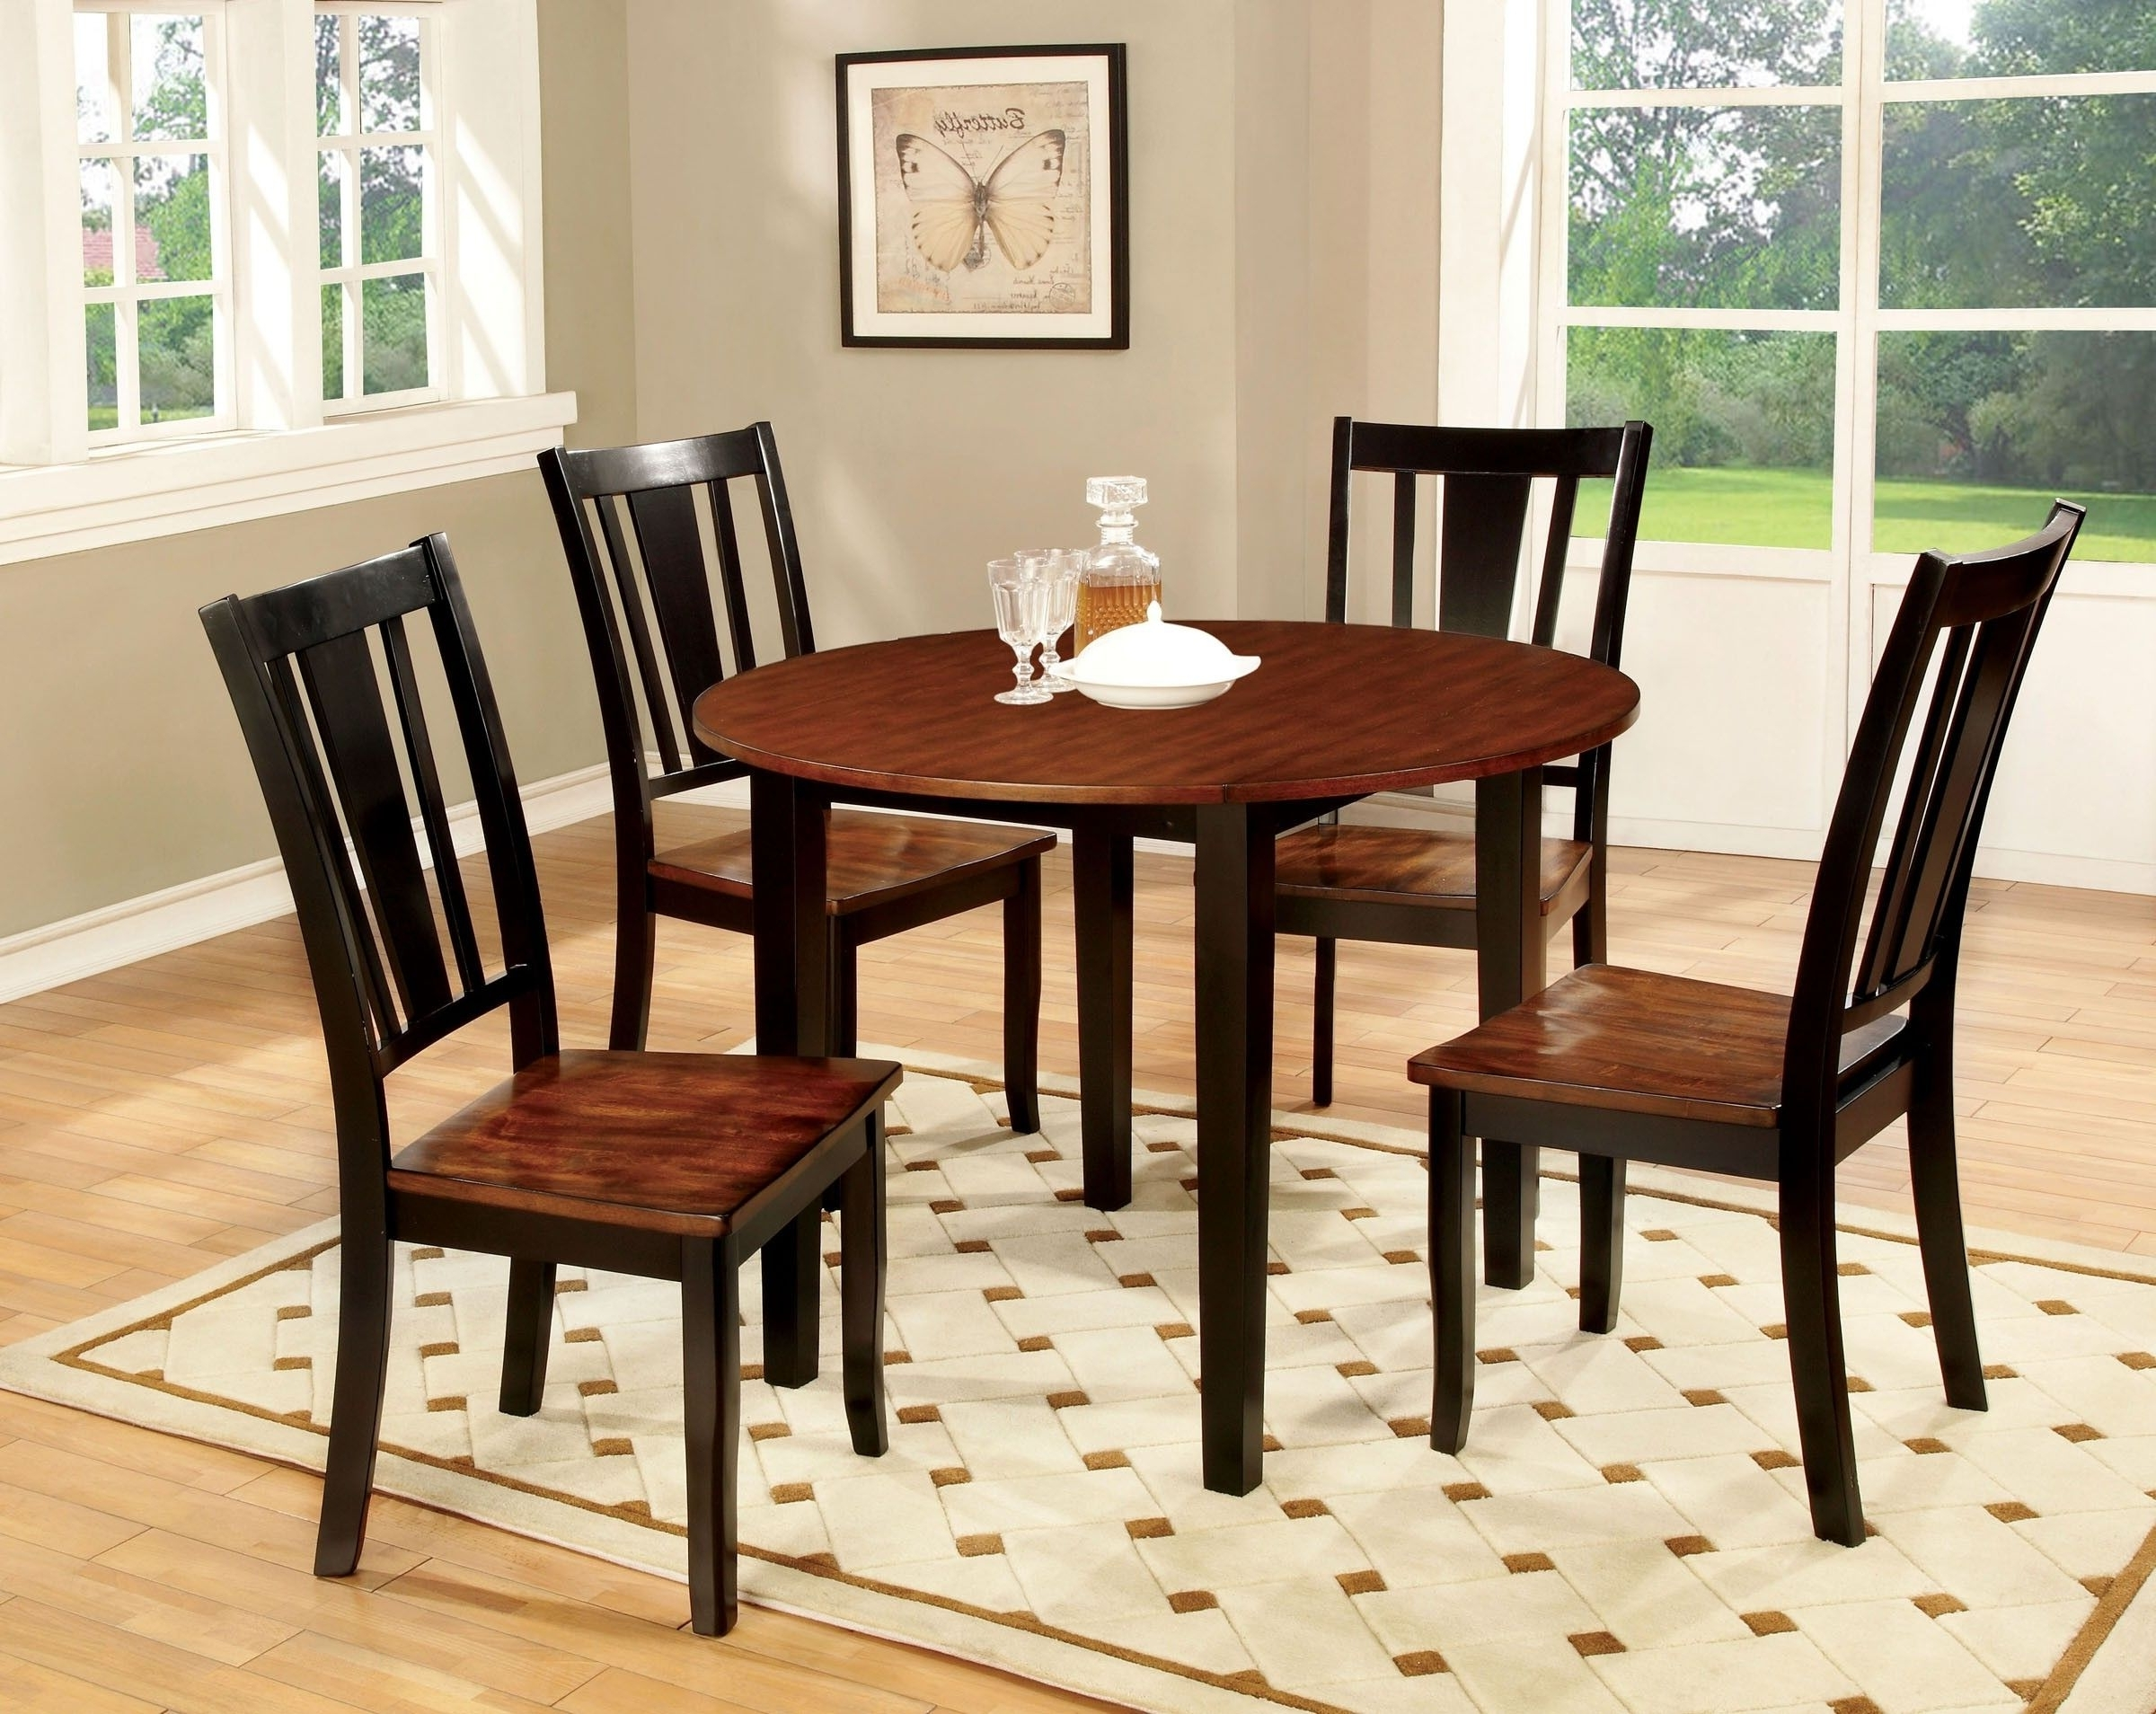 Caden 6 Piece Rectangle Dining Sets Intended For Current Simple Black And Cherry Dining Table (View 1 of 25)